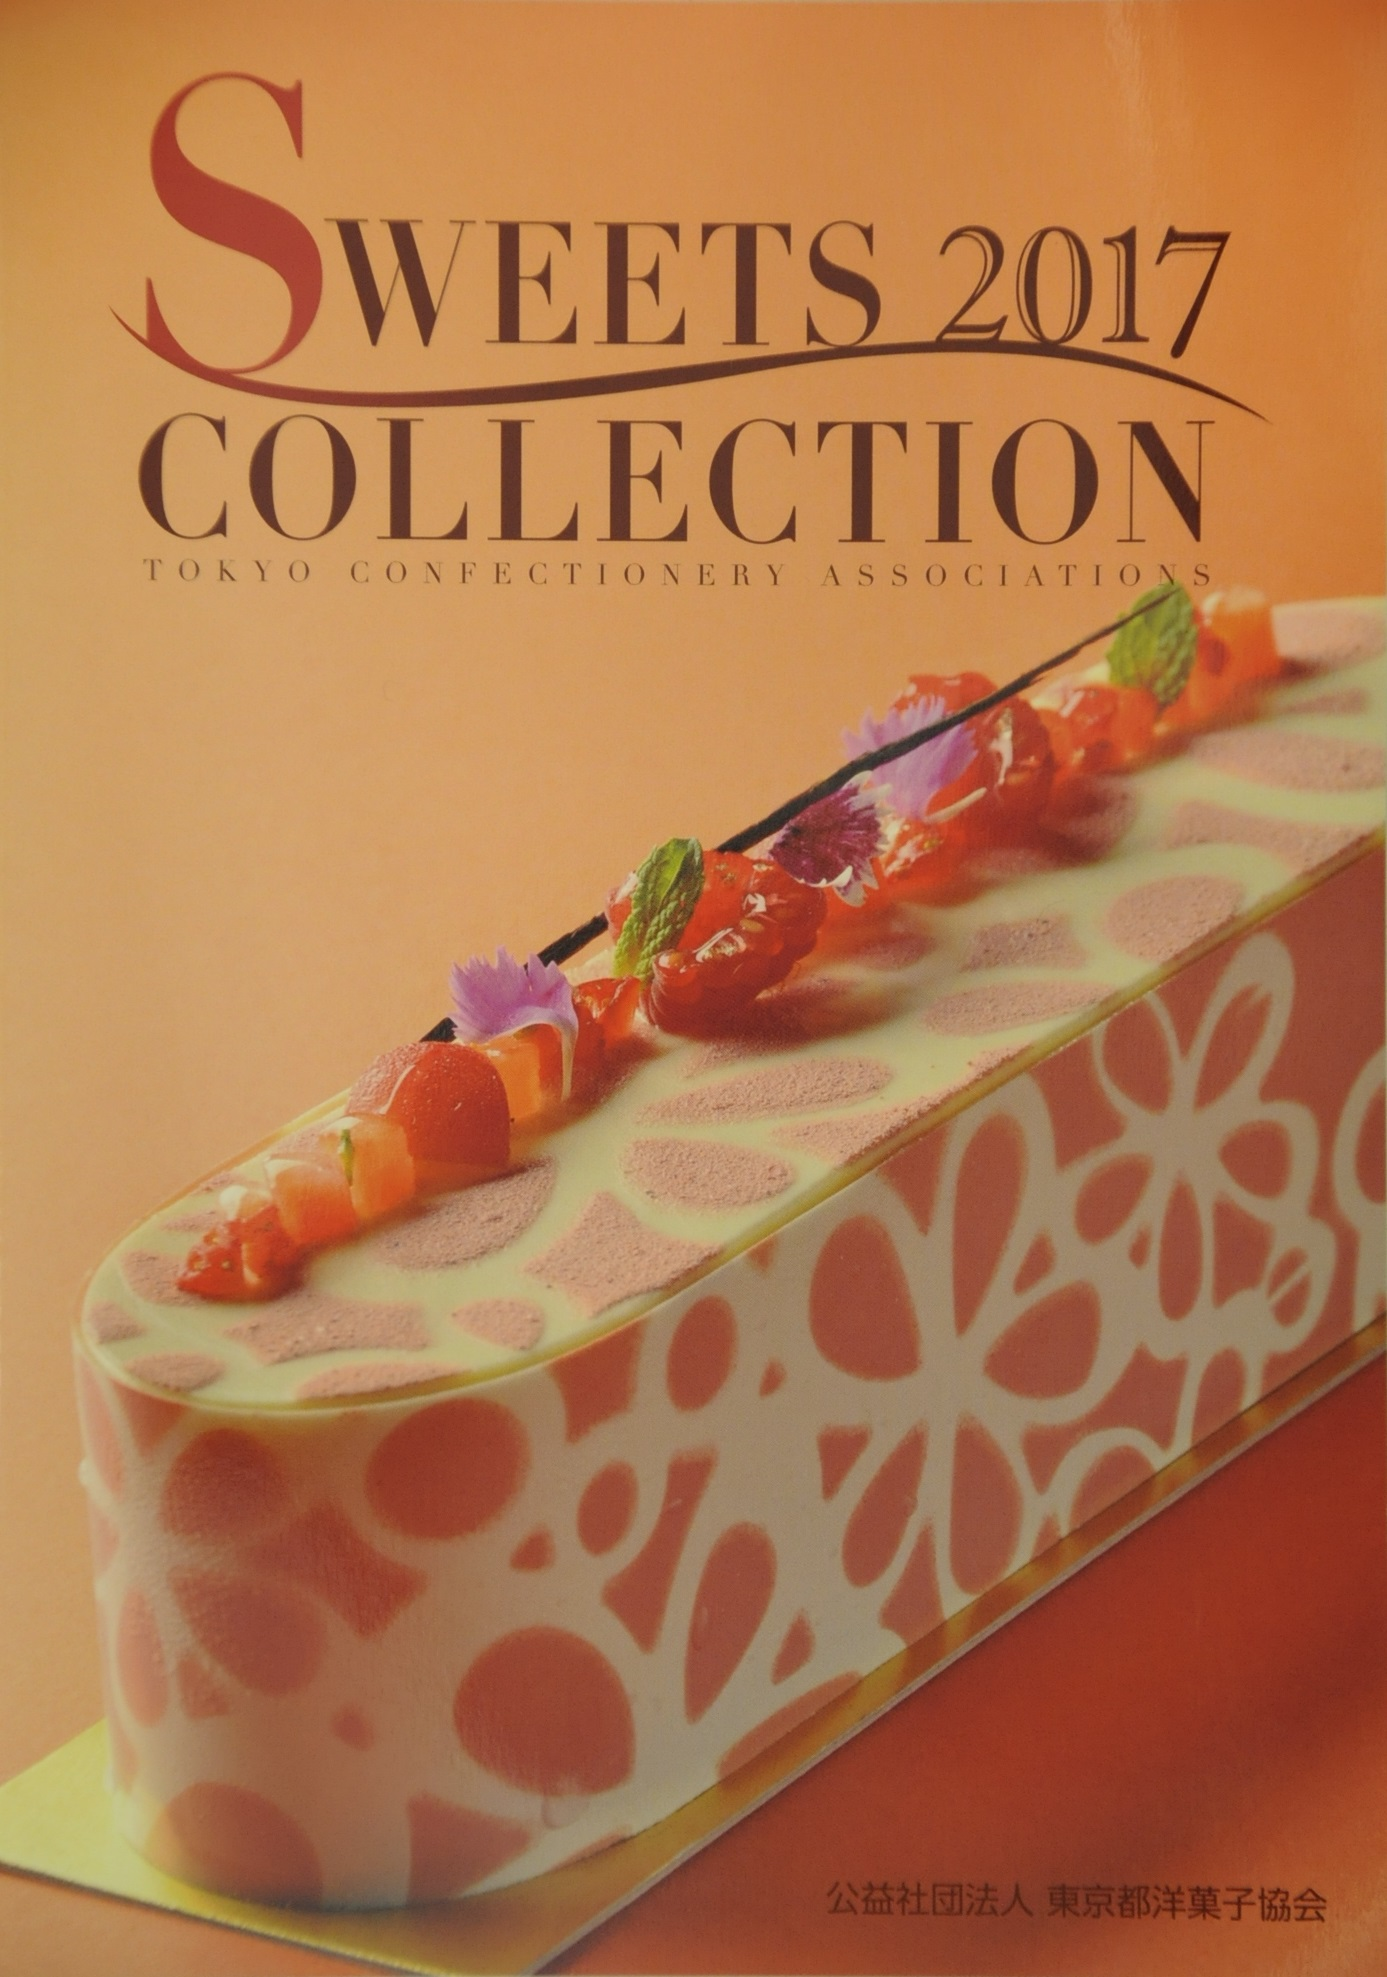 sweetscollection2017_2